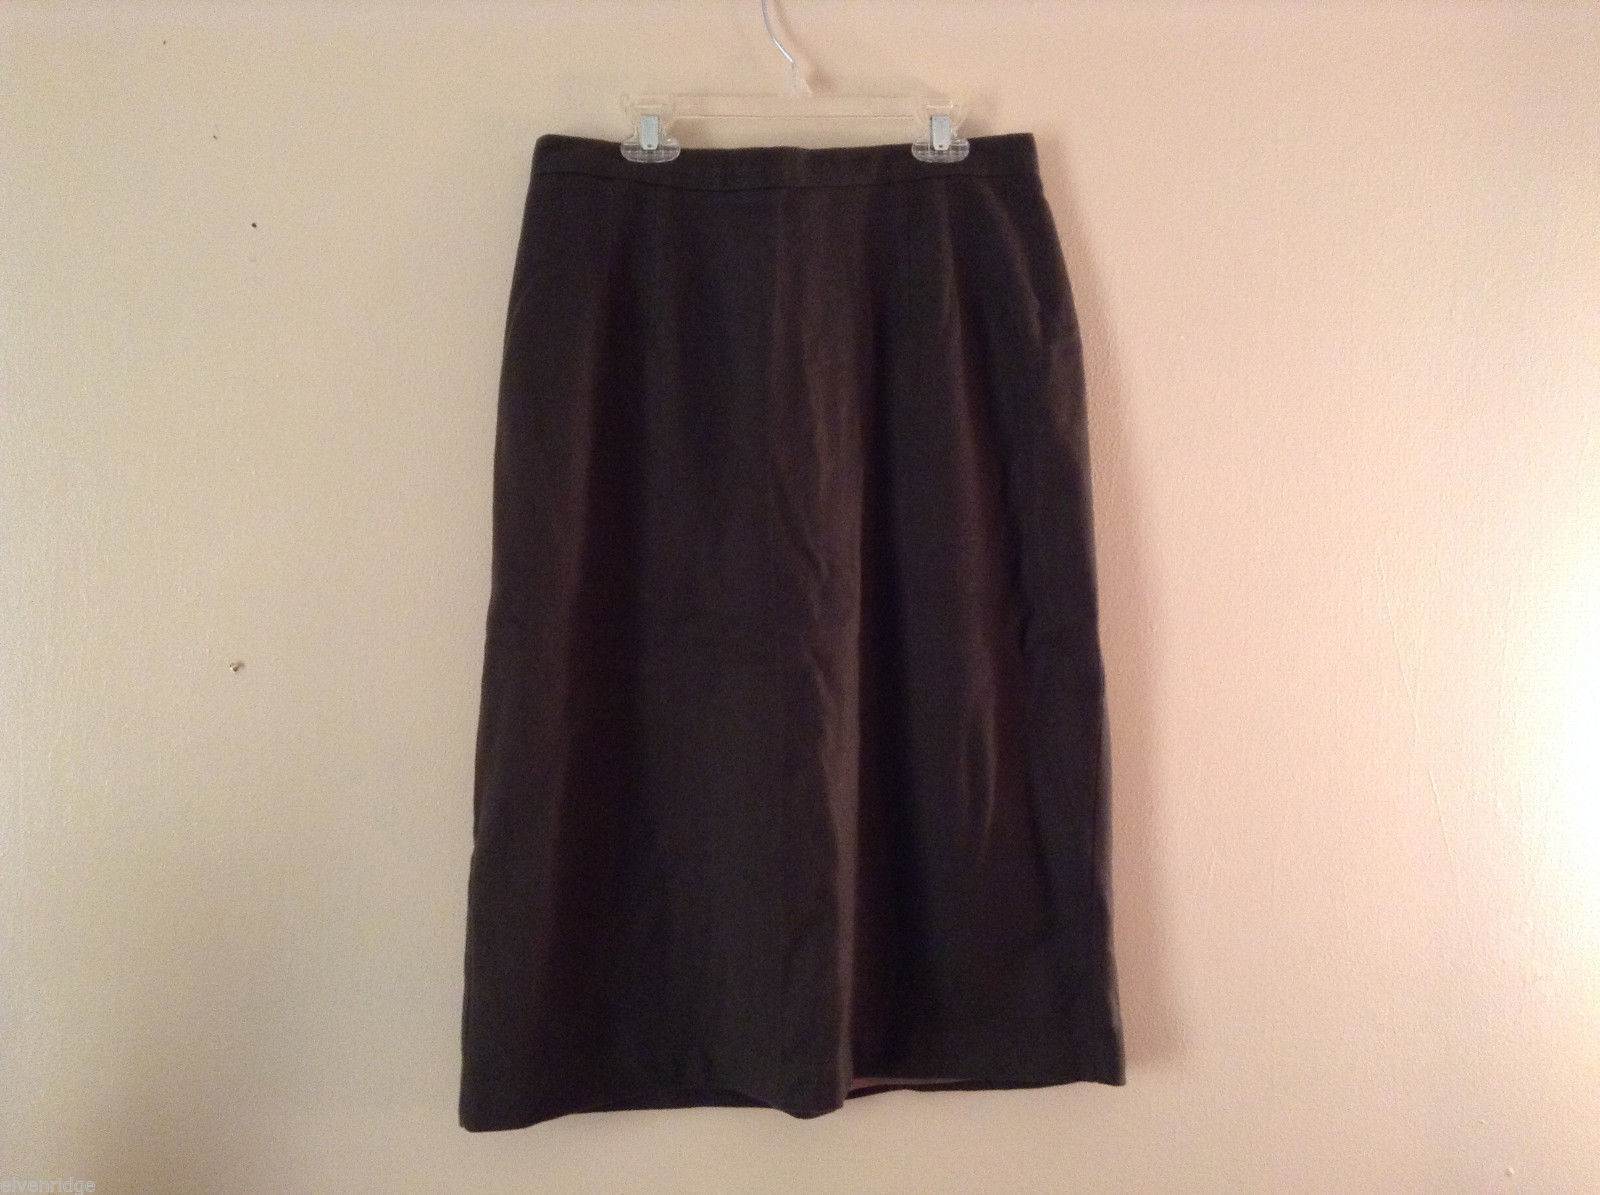 No Brand Women's Size 14 Skirt A-Line Lined 100% Wool Dark Forest Green